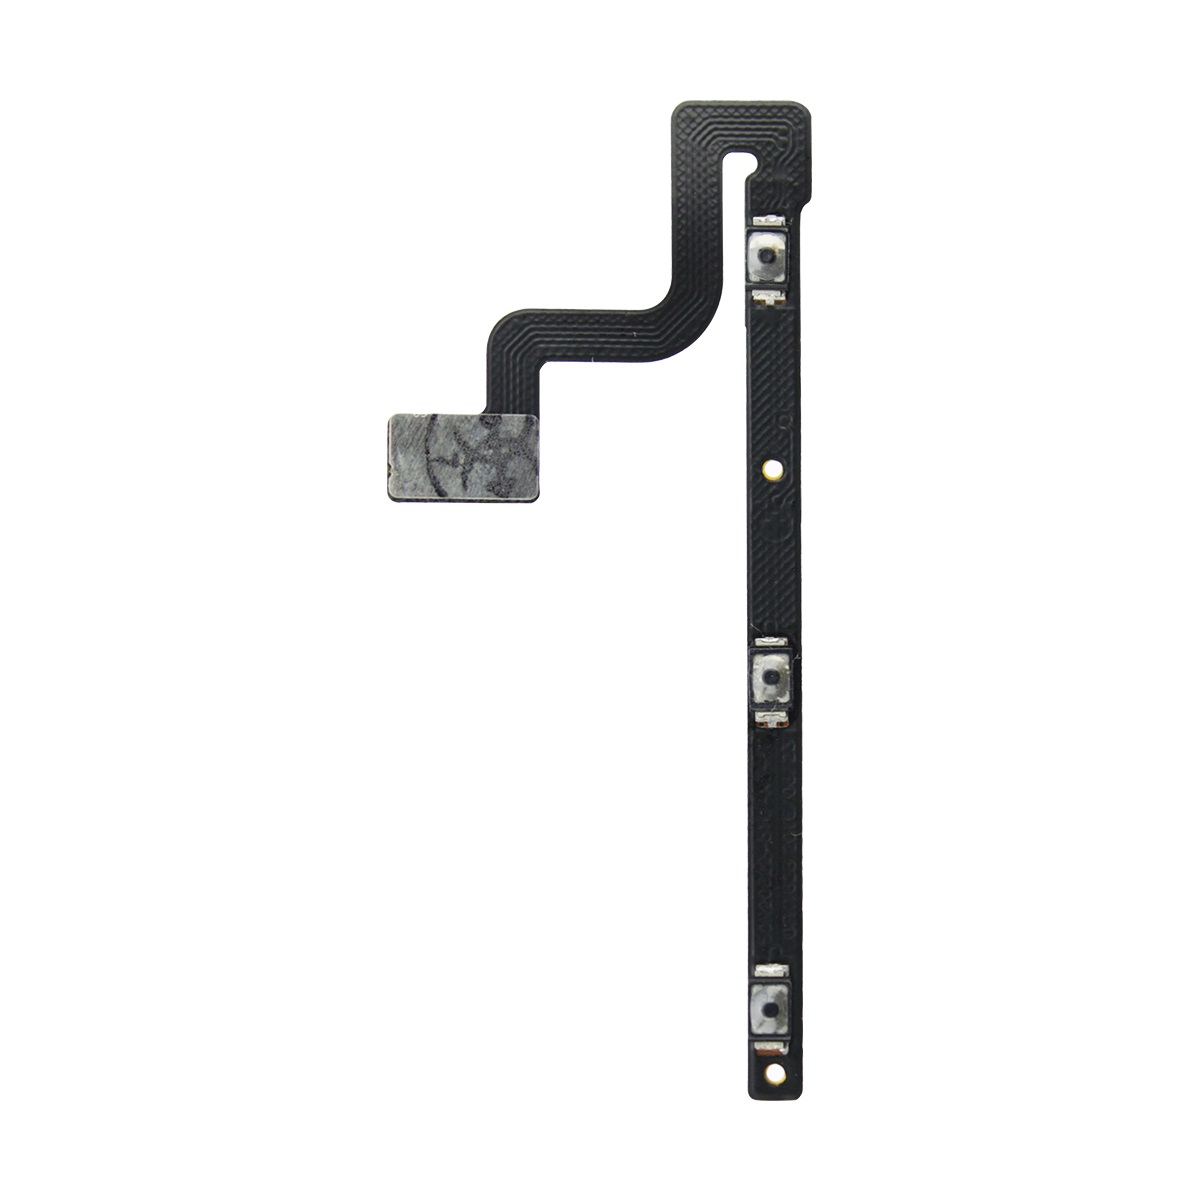 For Google Pixel S1 5.0/Pixel XL M1 5.5 Power And Volume Buttons Flex Cable